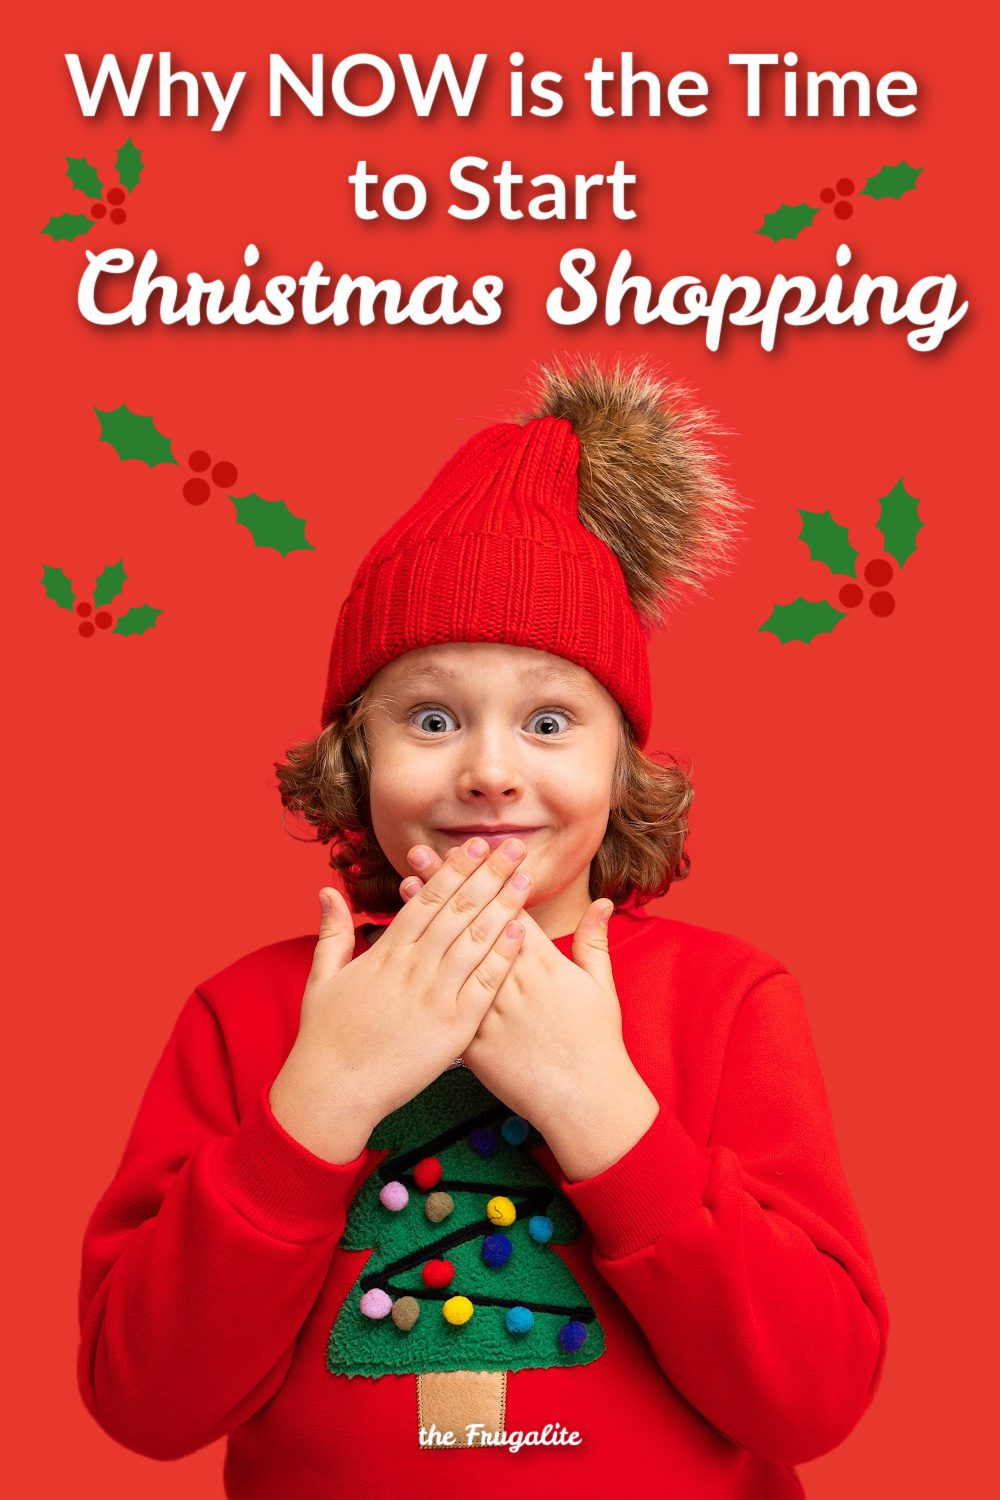 Why NOW is the Time to Start Christmas Shopping